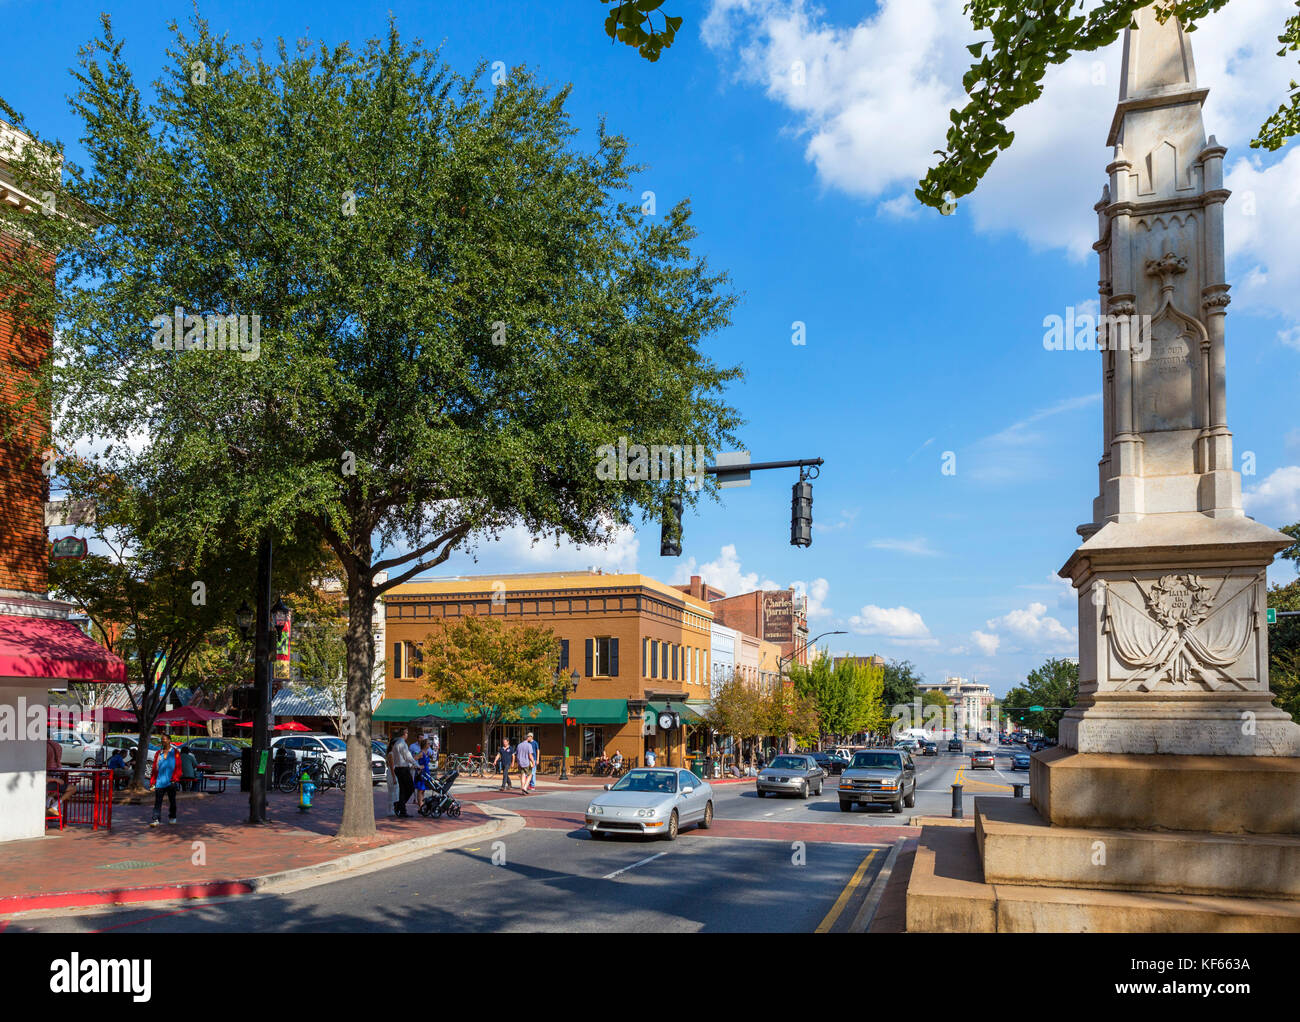 Confederate war memorial on East Broad Street in downtown Athens, Georgia, USA. Stock Photo